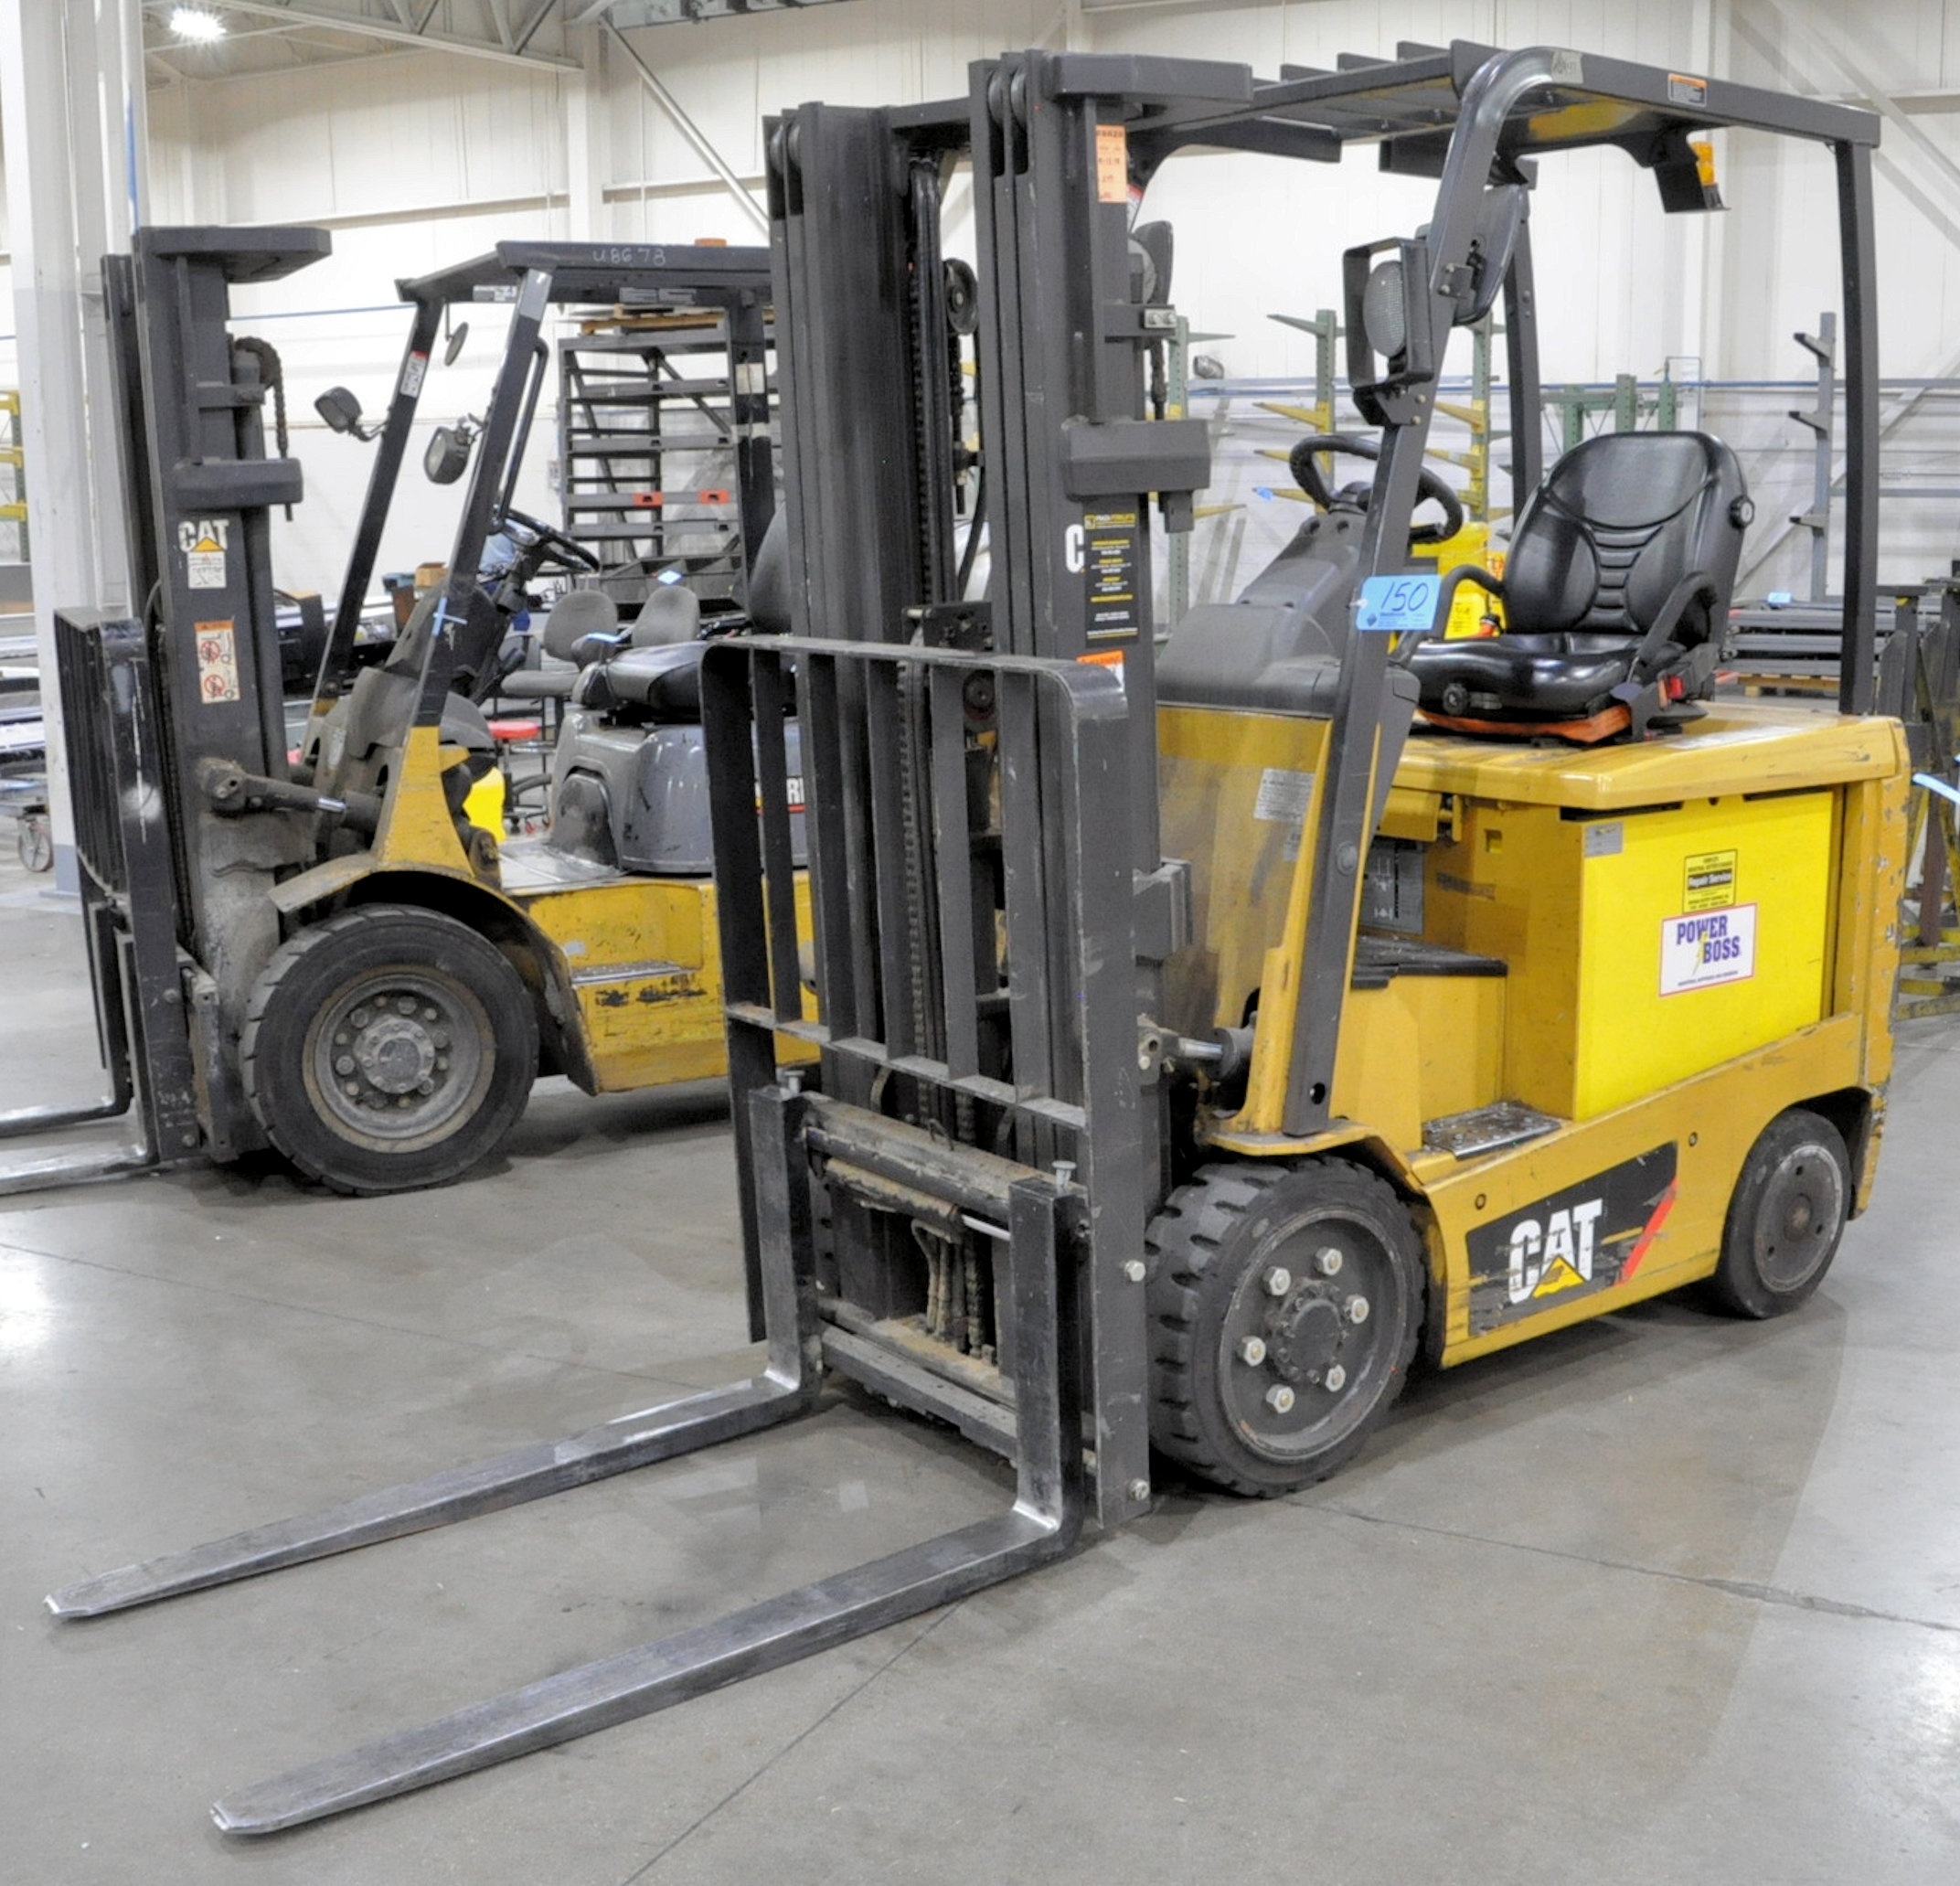 "Caterpillar Model EC25N2, 4,450-Lbs. x 188"" Lift Capacity Electric Fork Lift, 3 Stage Mast, Charger"